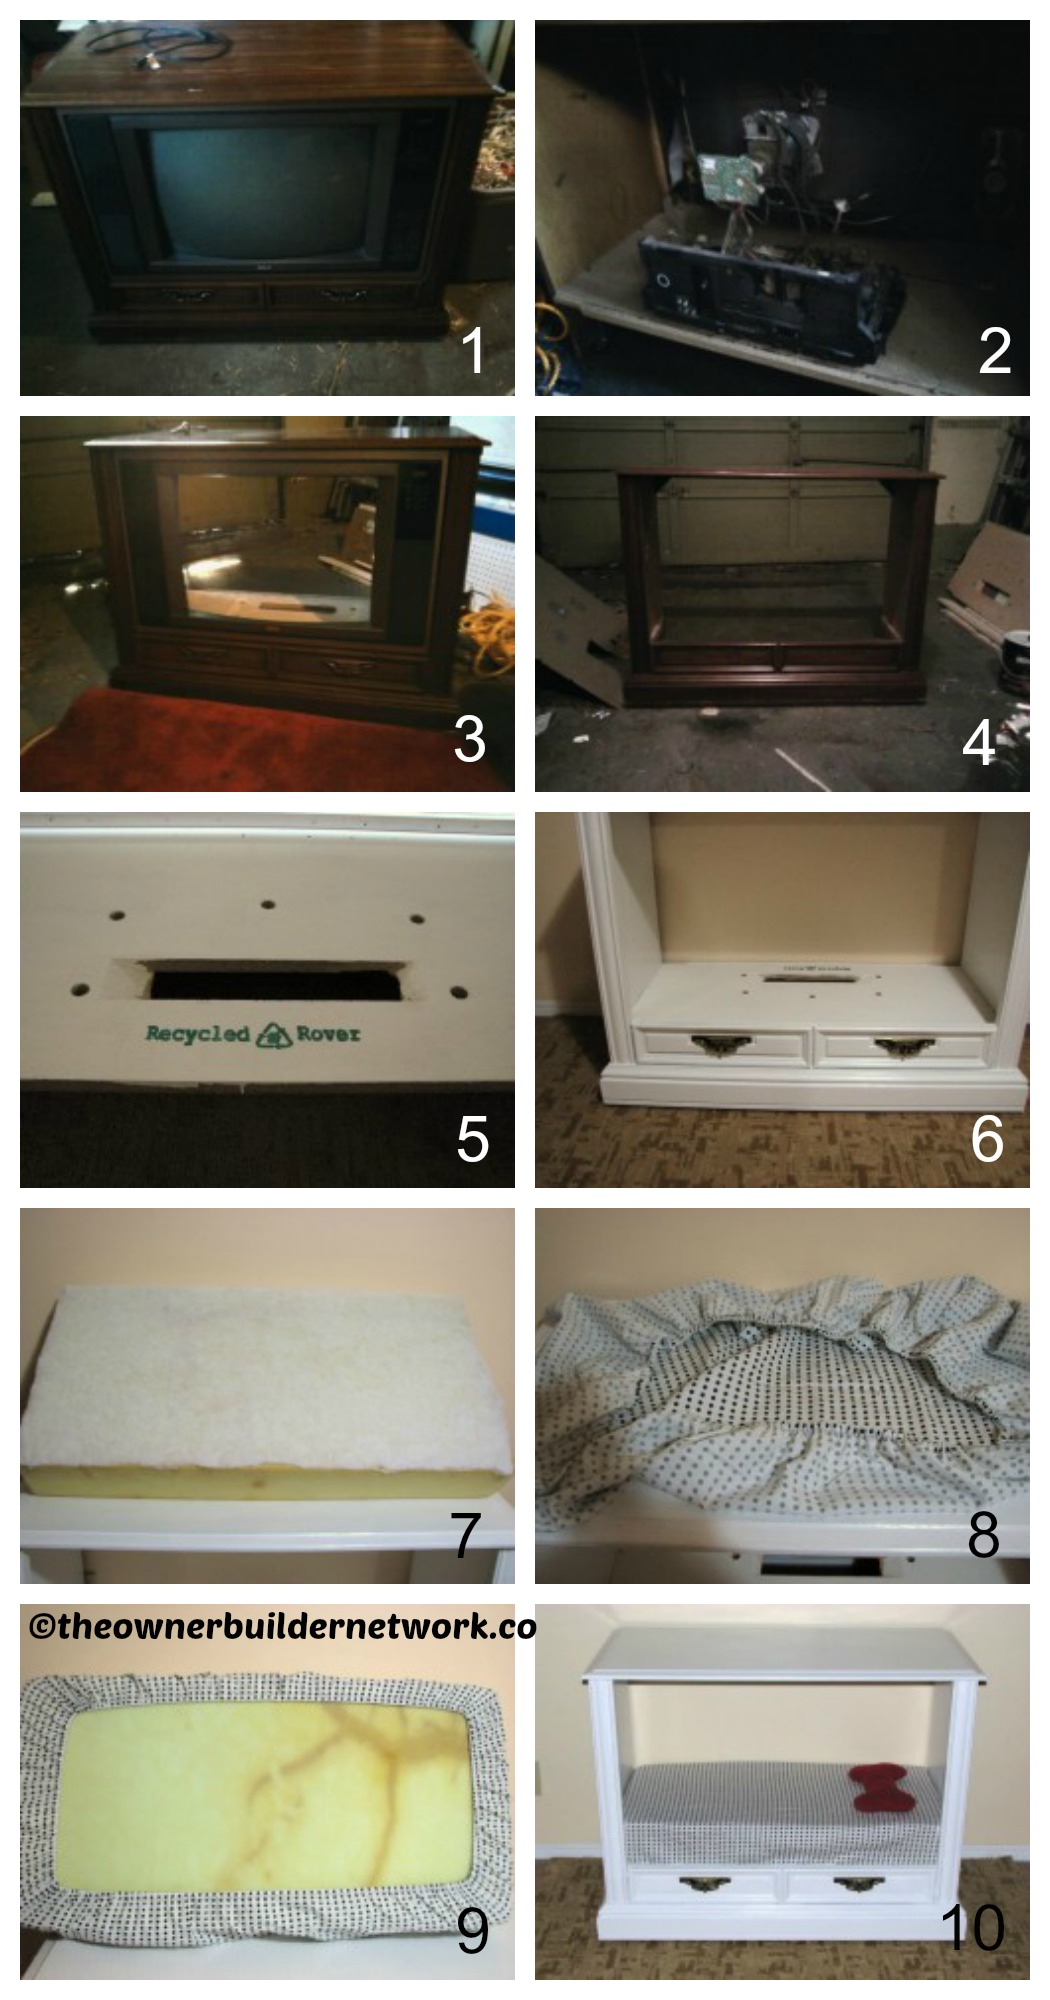 How to make a Dog Bed from Old TV